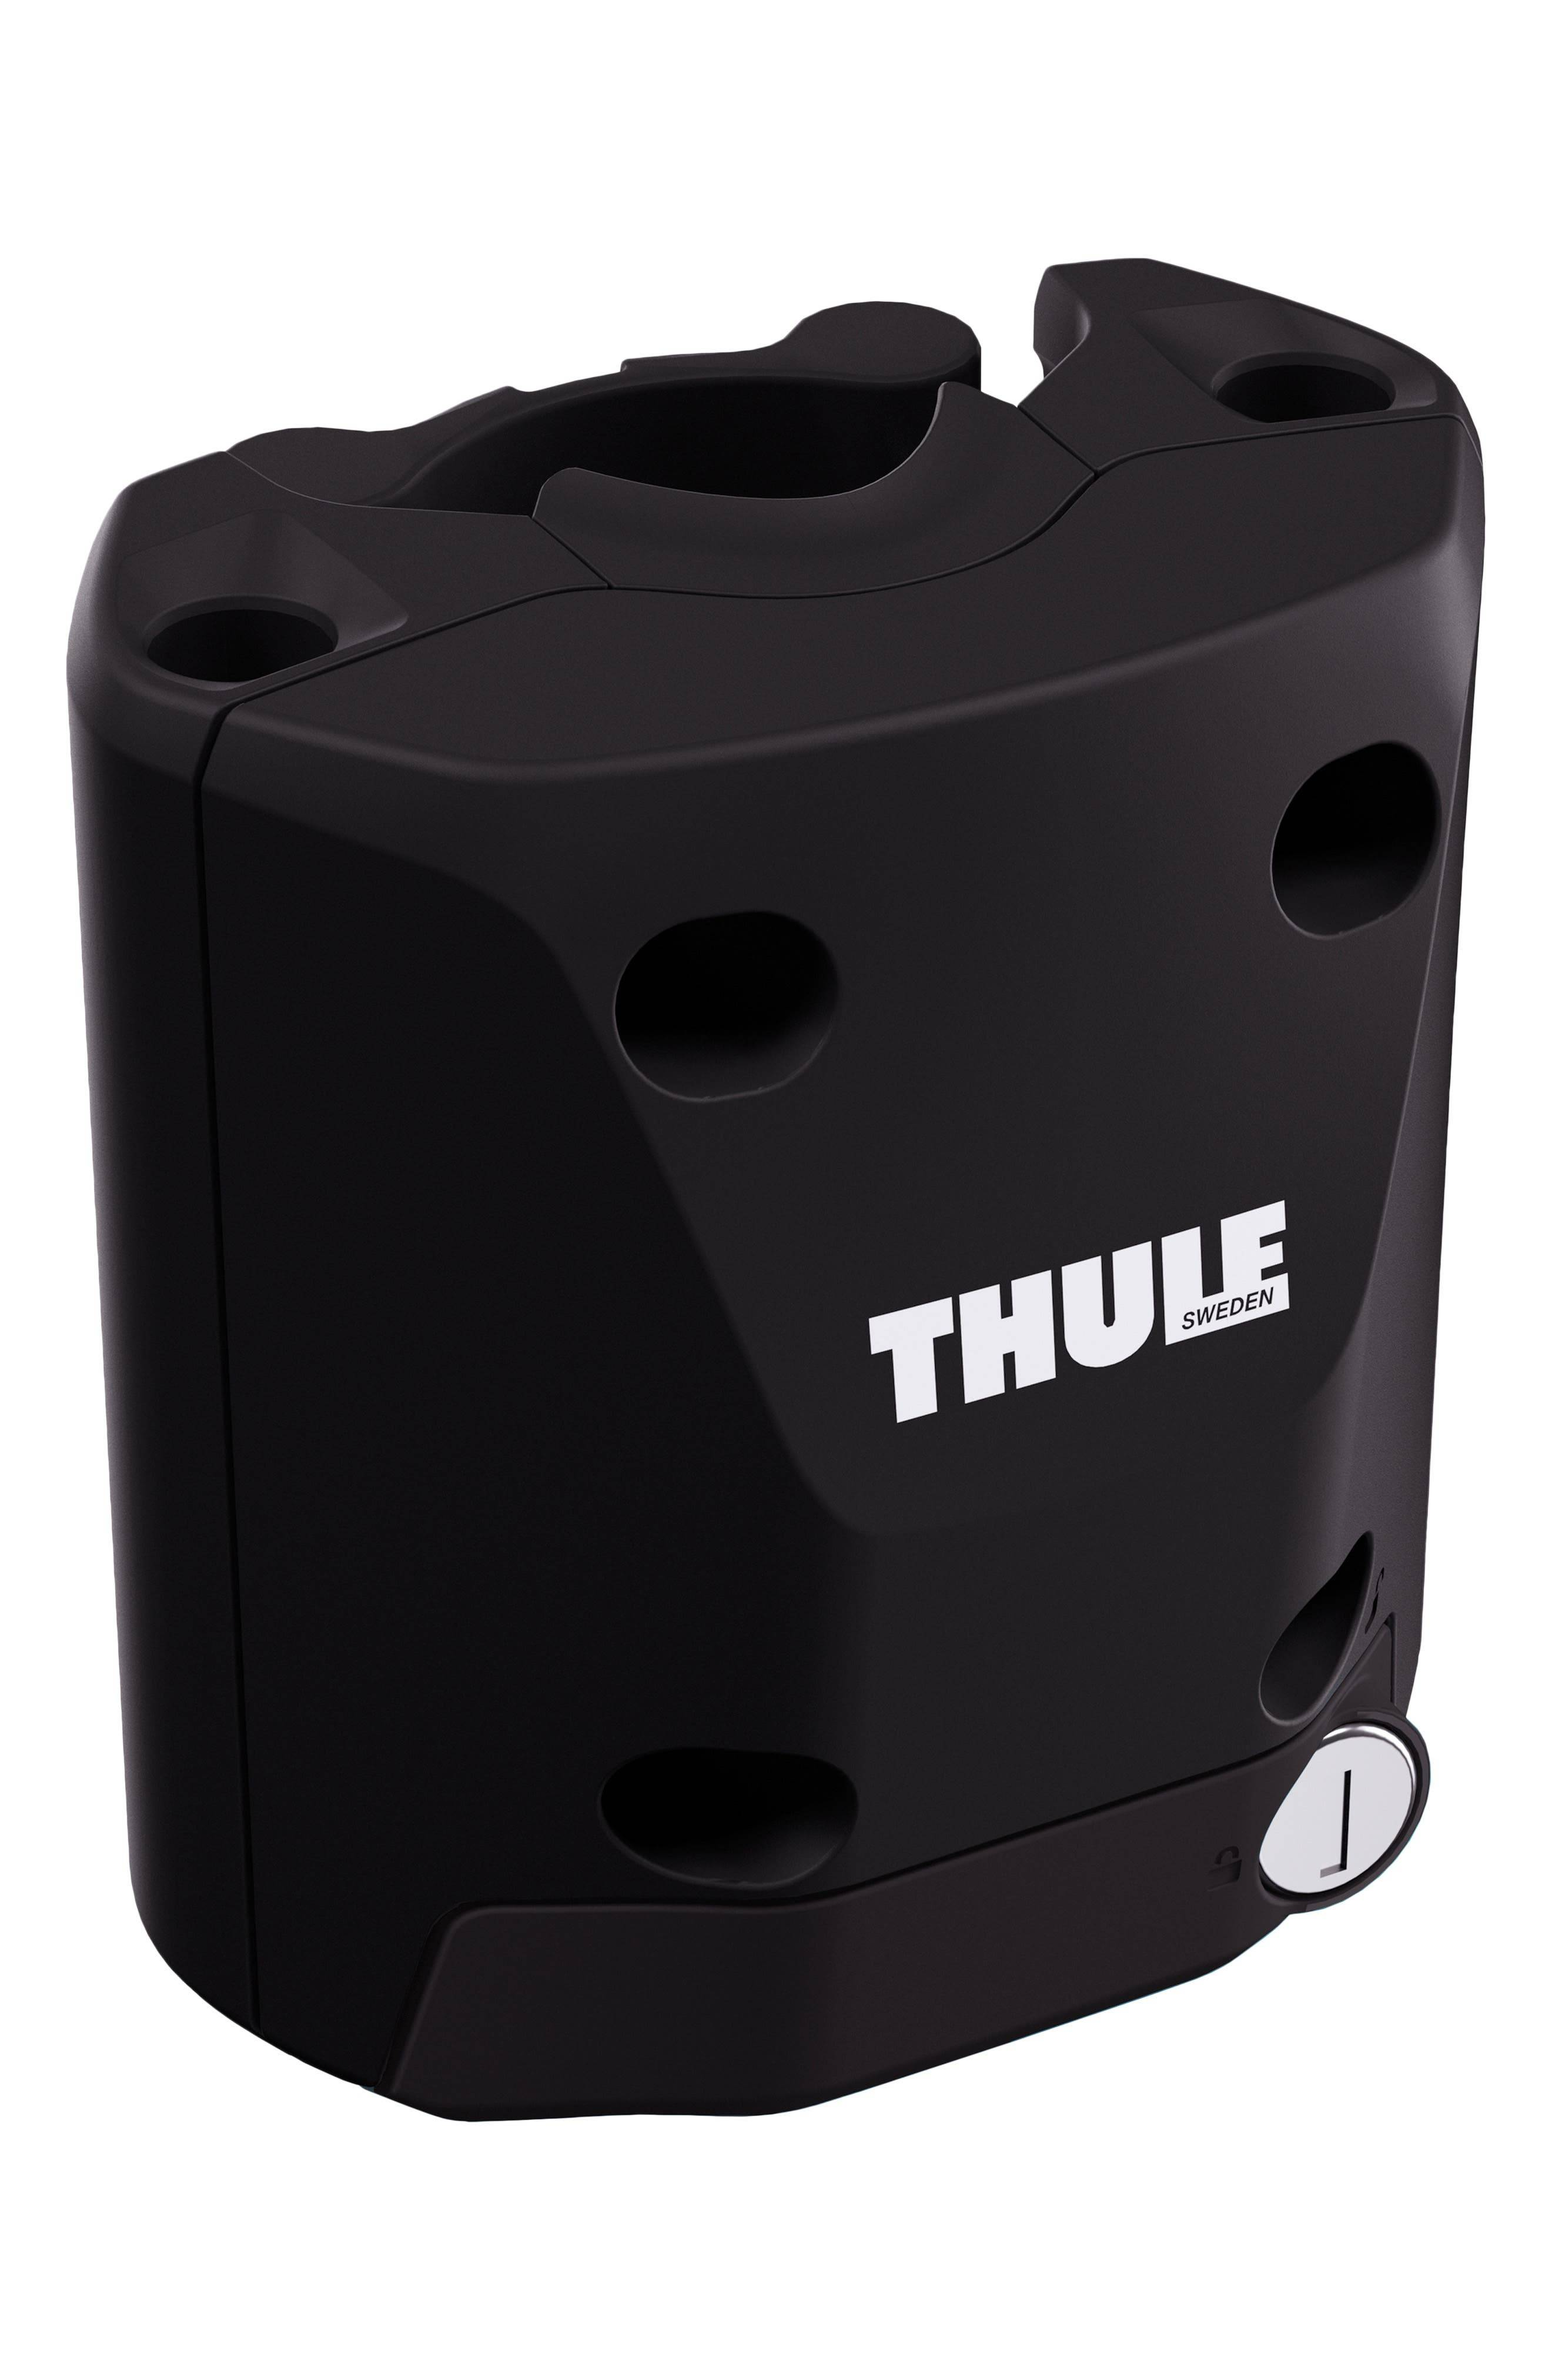 Thule Infant Thule Quick Release Bracket For Child Bike Seat, Size One Size - Black